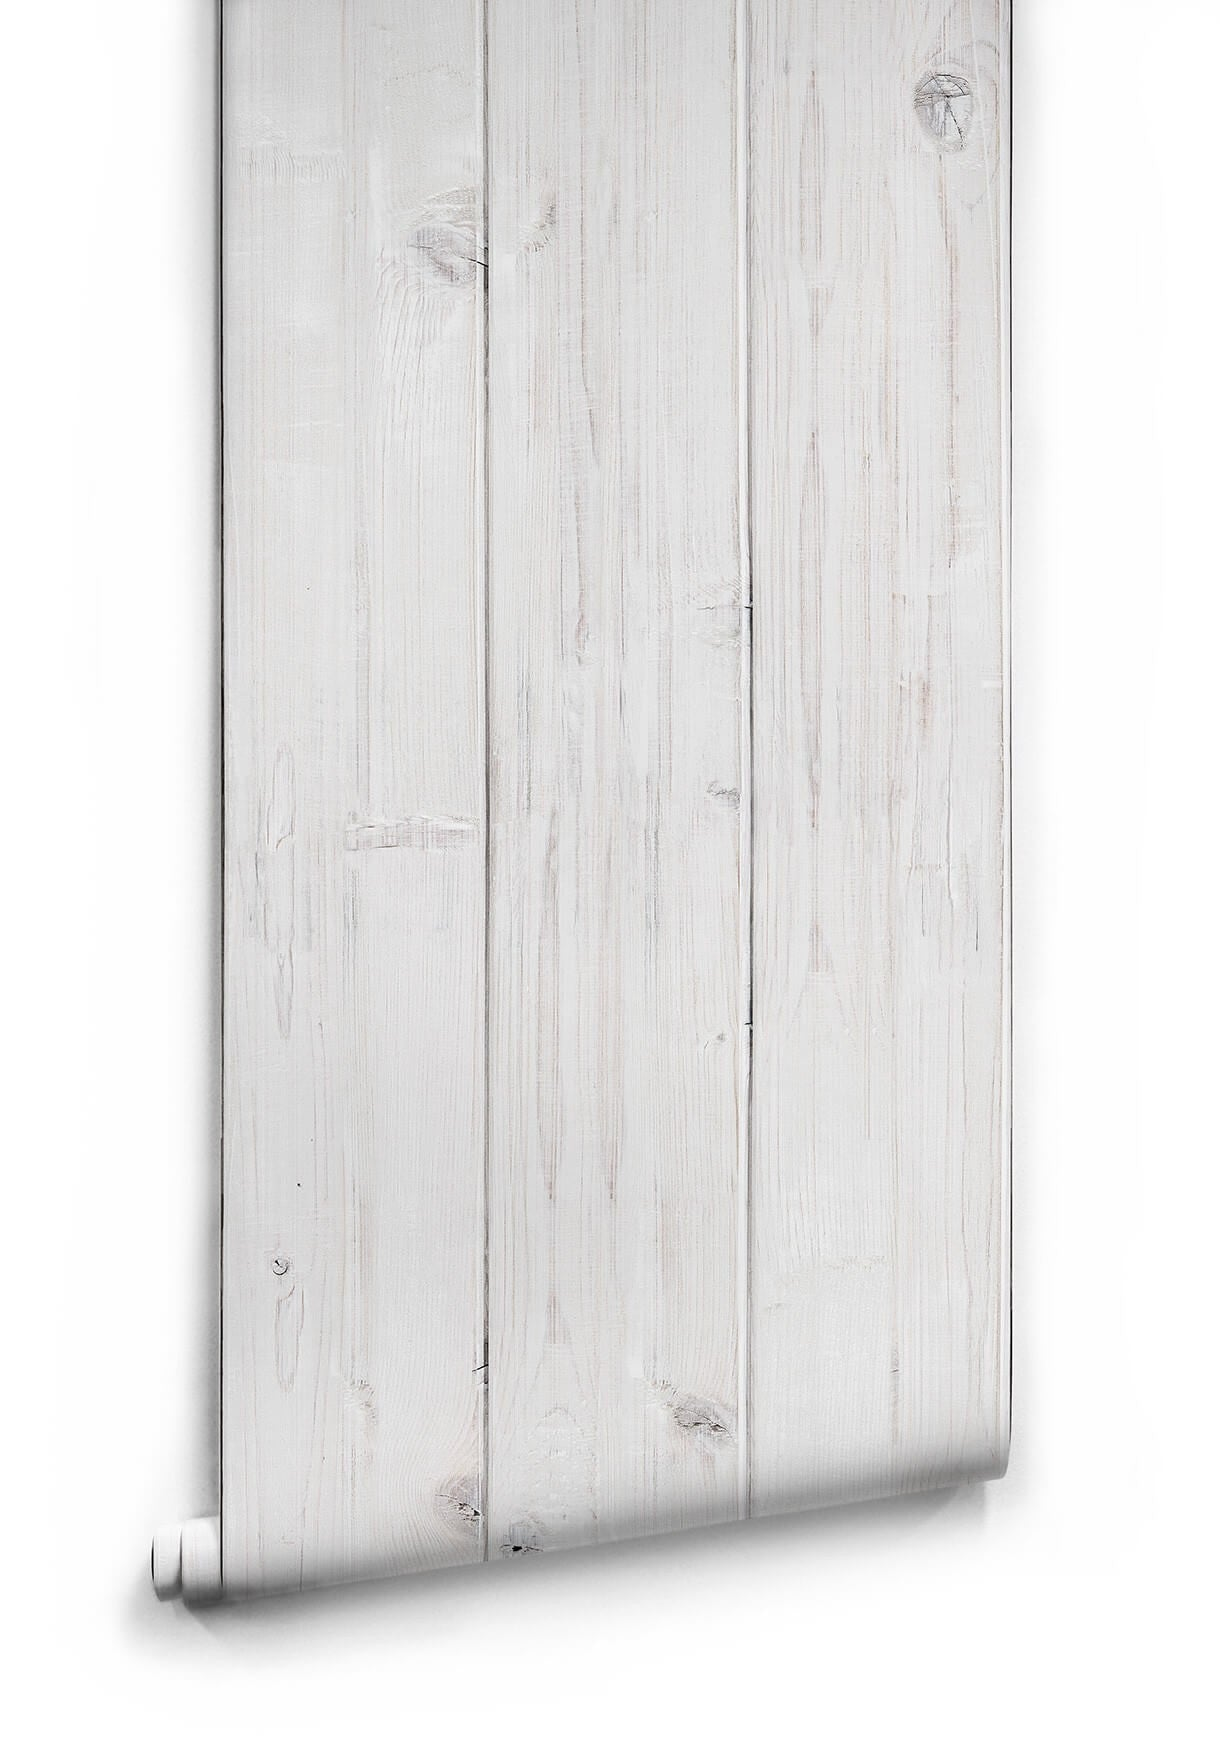 Whitewashed Timber Wallpaper from the Kemra Collection design by Milton & King